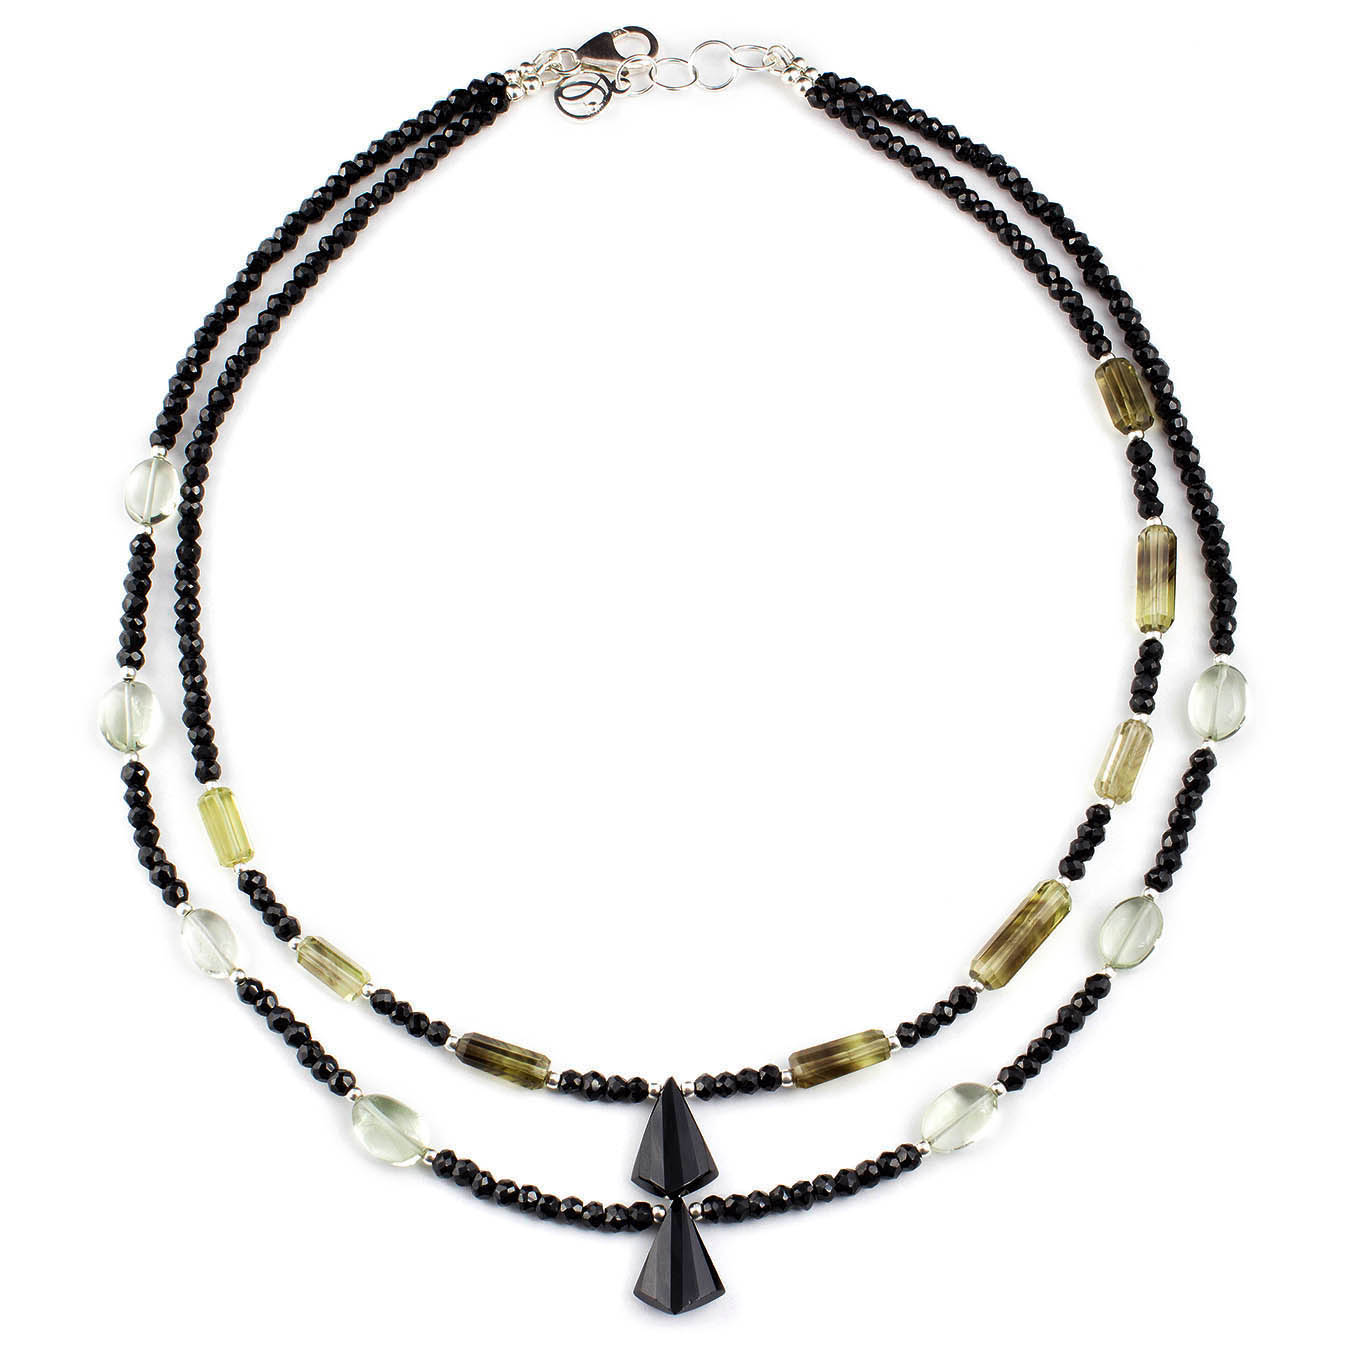 Beaded double strand necklace made of spinel, quartz and amethyst